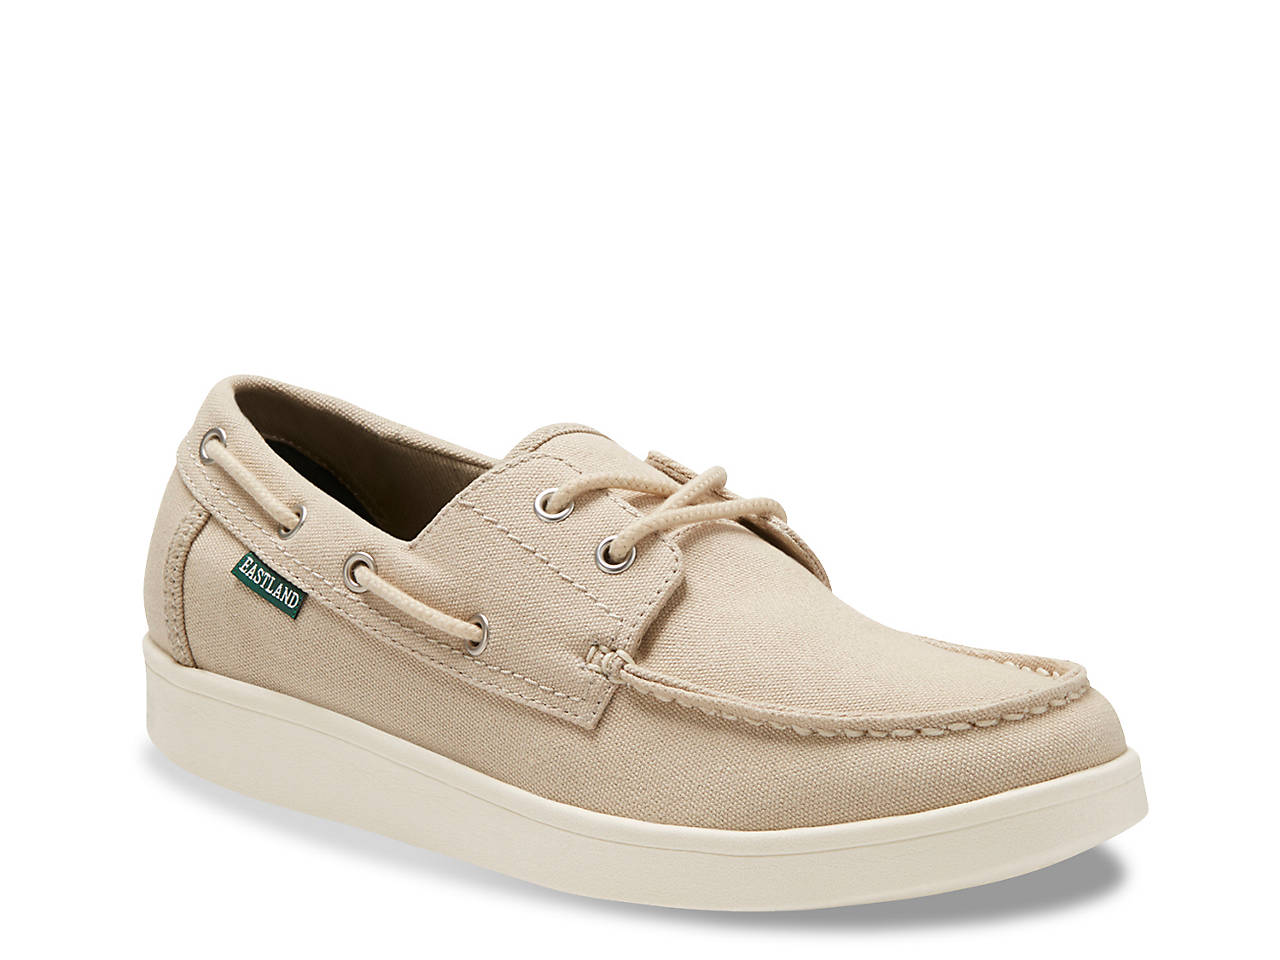 Eastland Popham Men's Boat ... Shoes